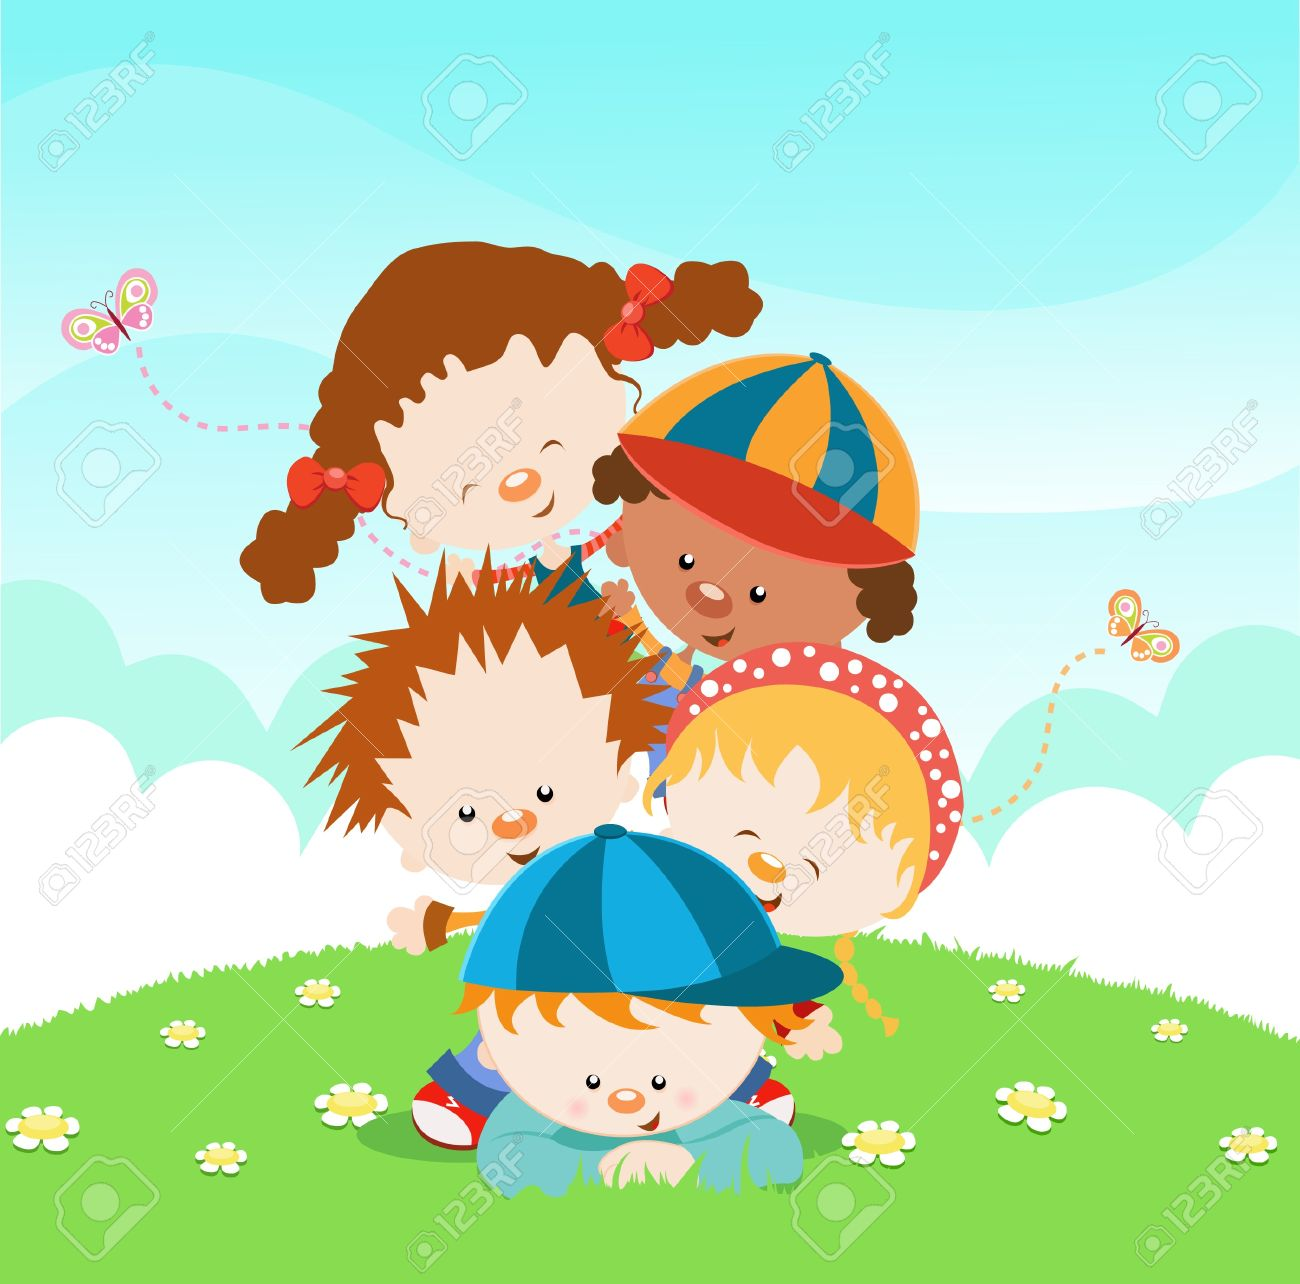 Cute Little Kids Piled Up Stock Vector - 10042376